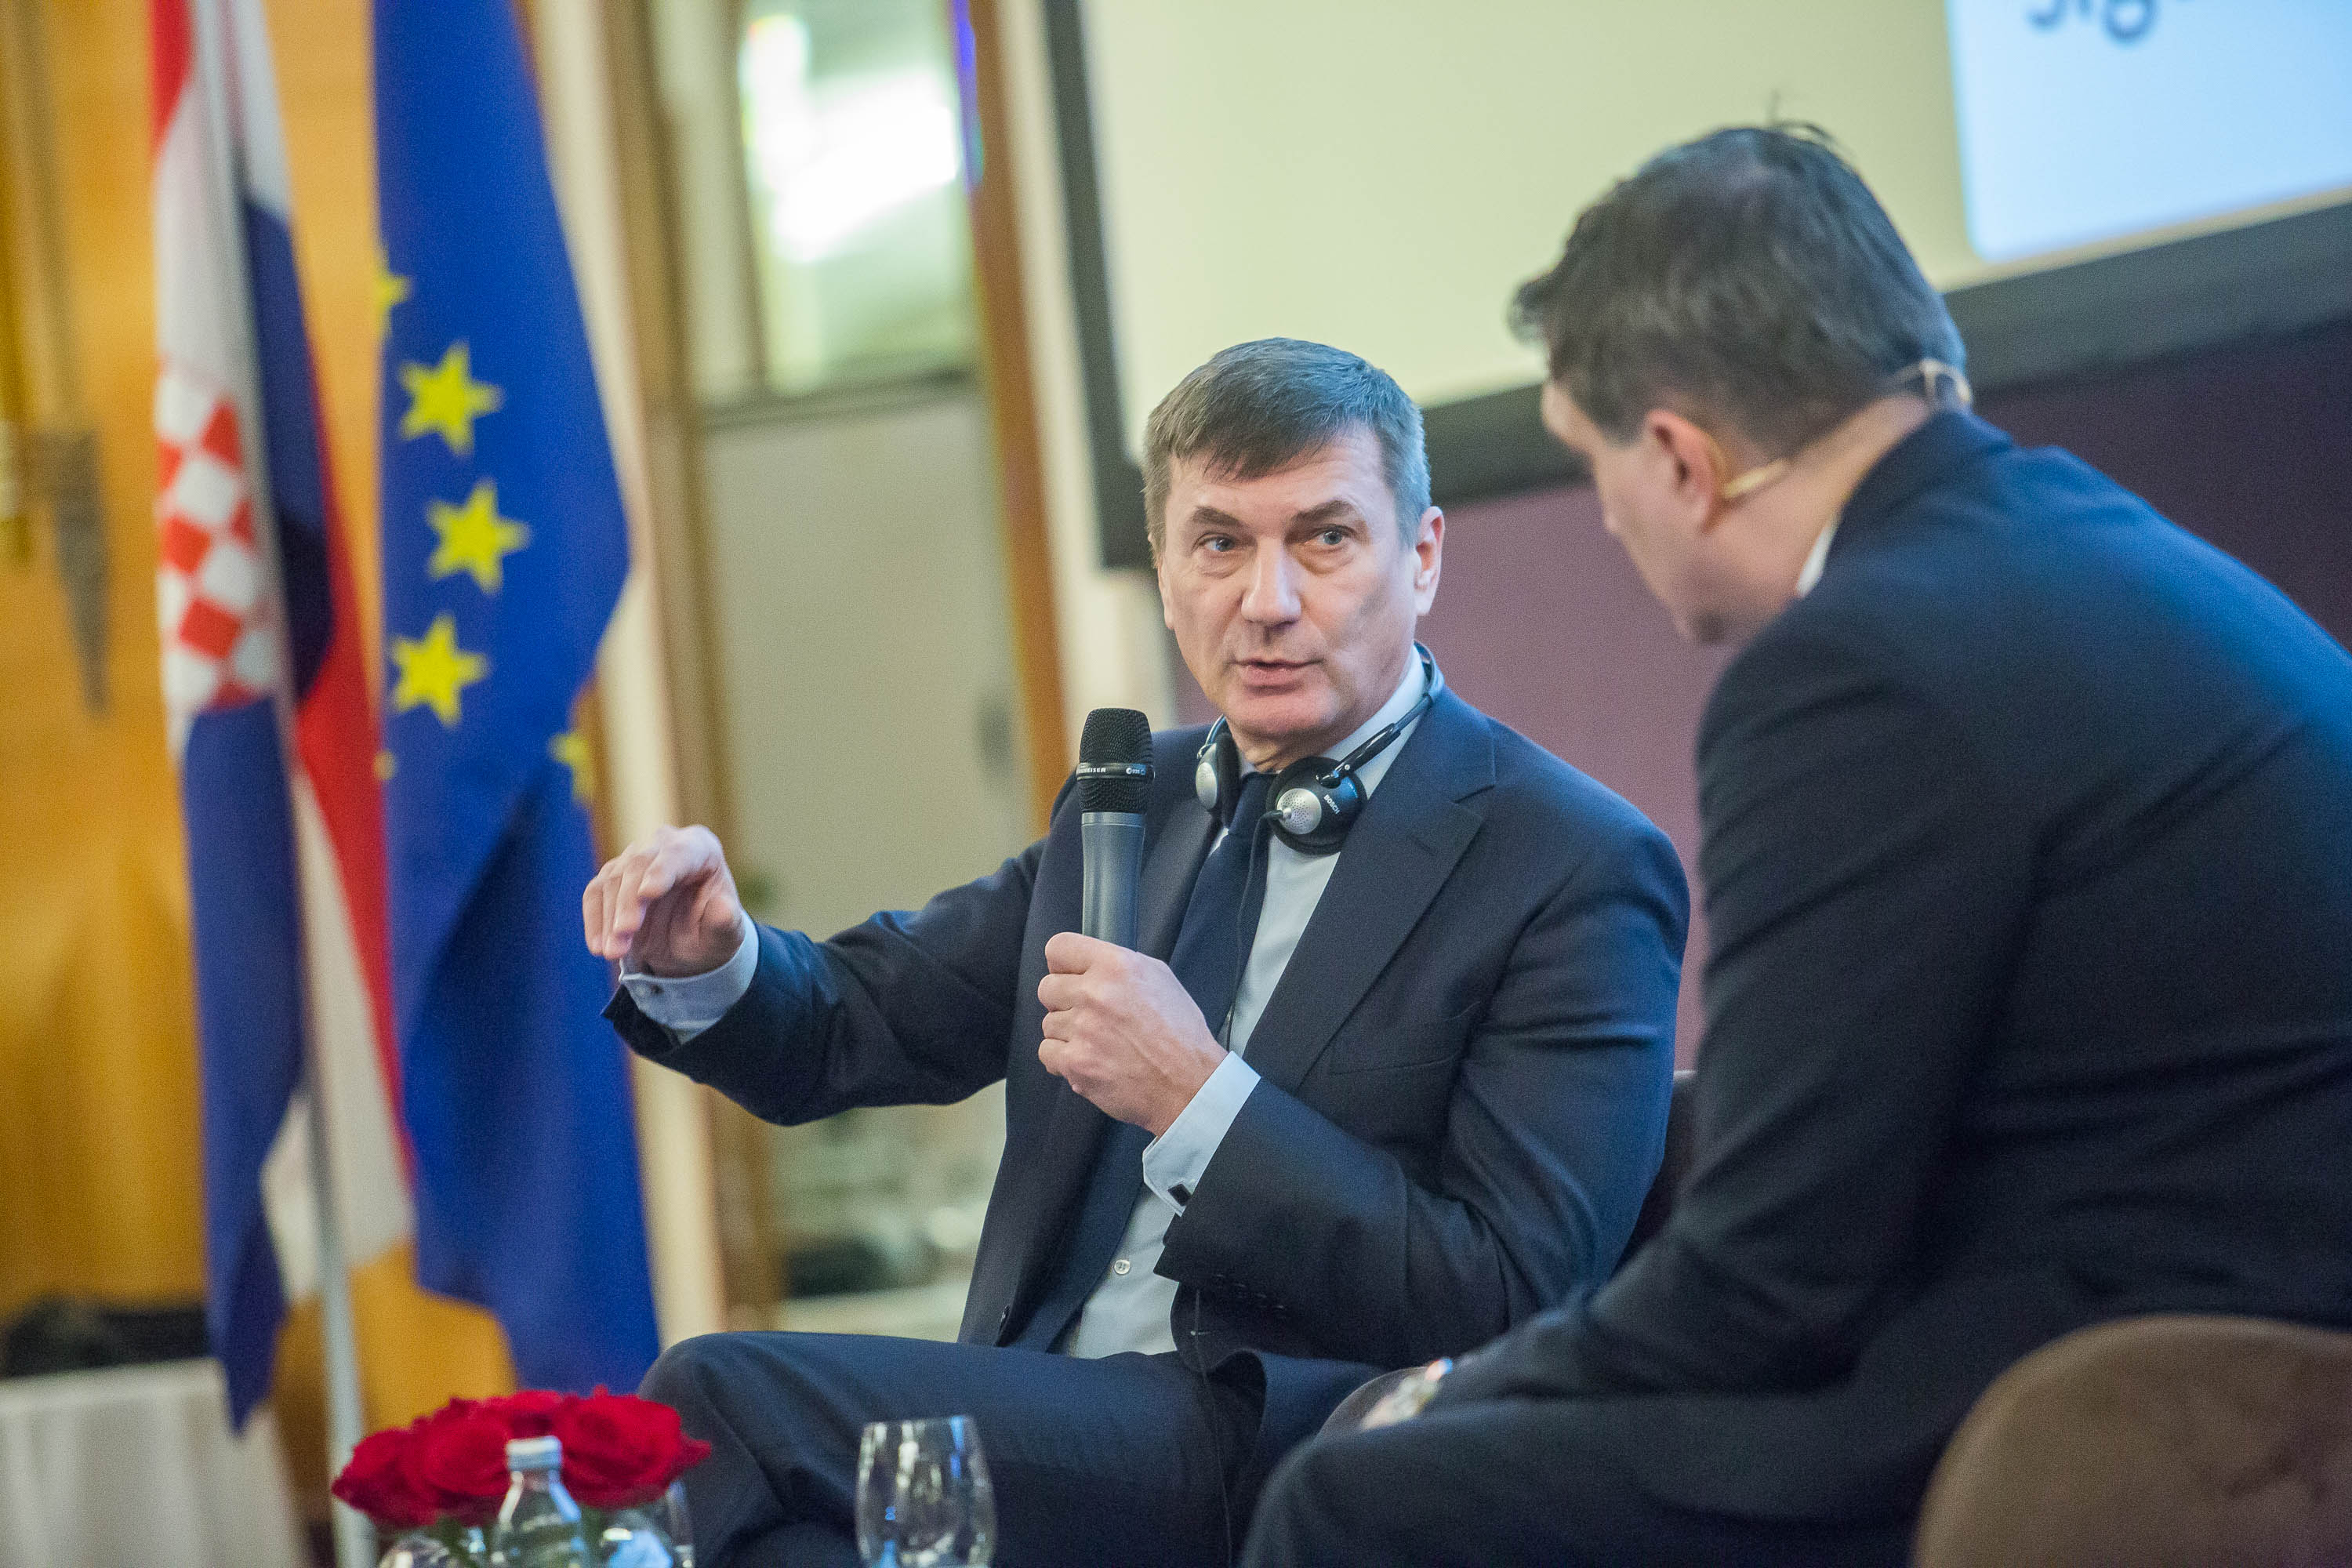 Citizens' Dialogue VP Ansip Zagreb